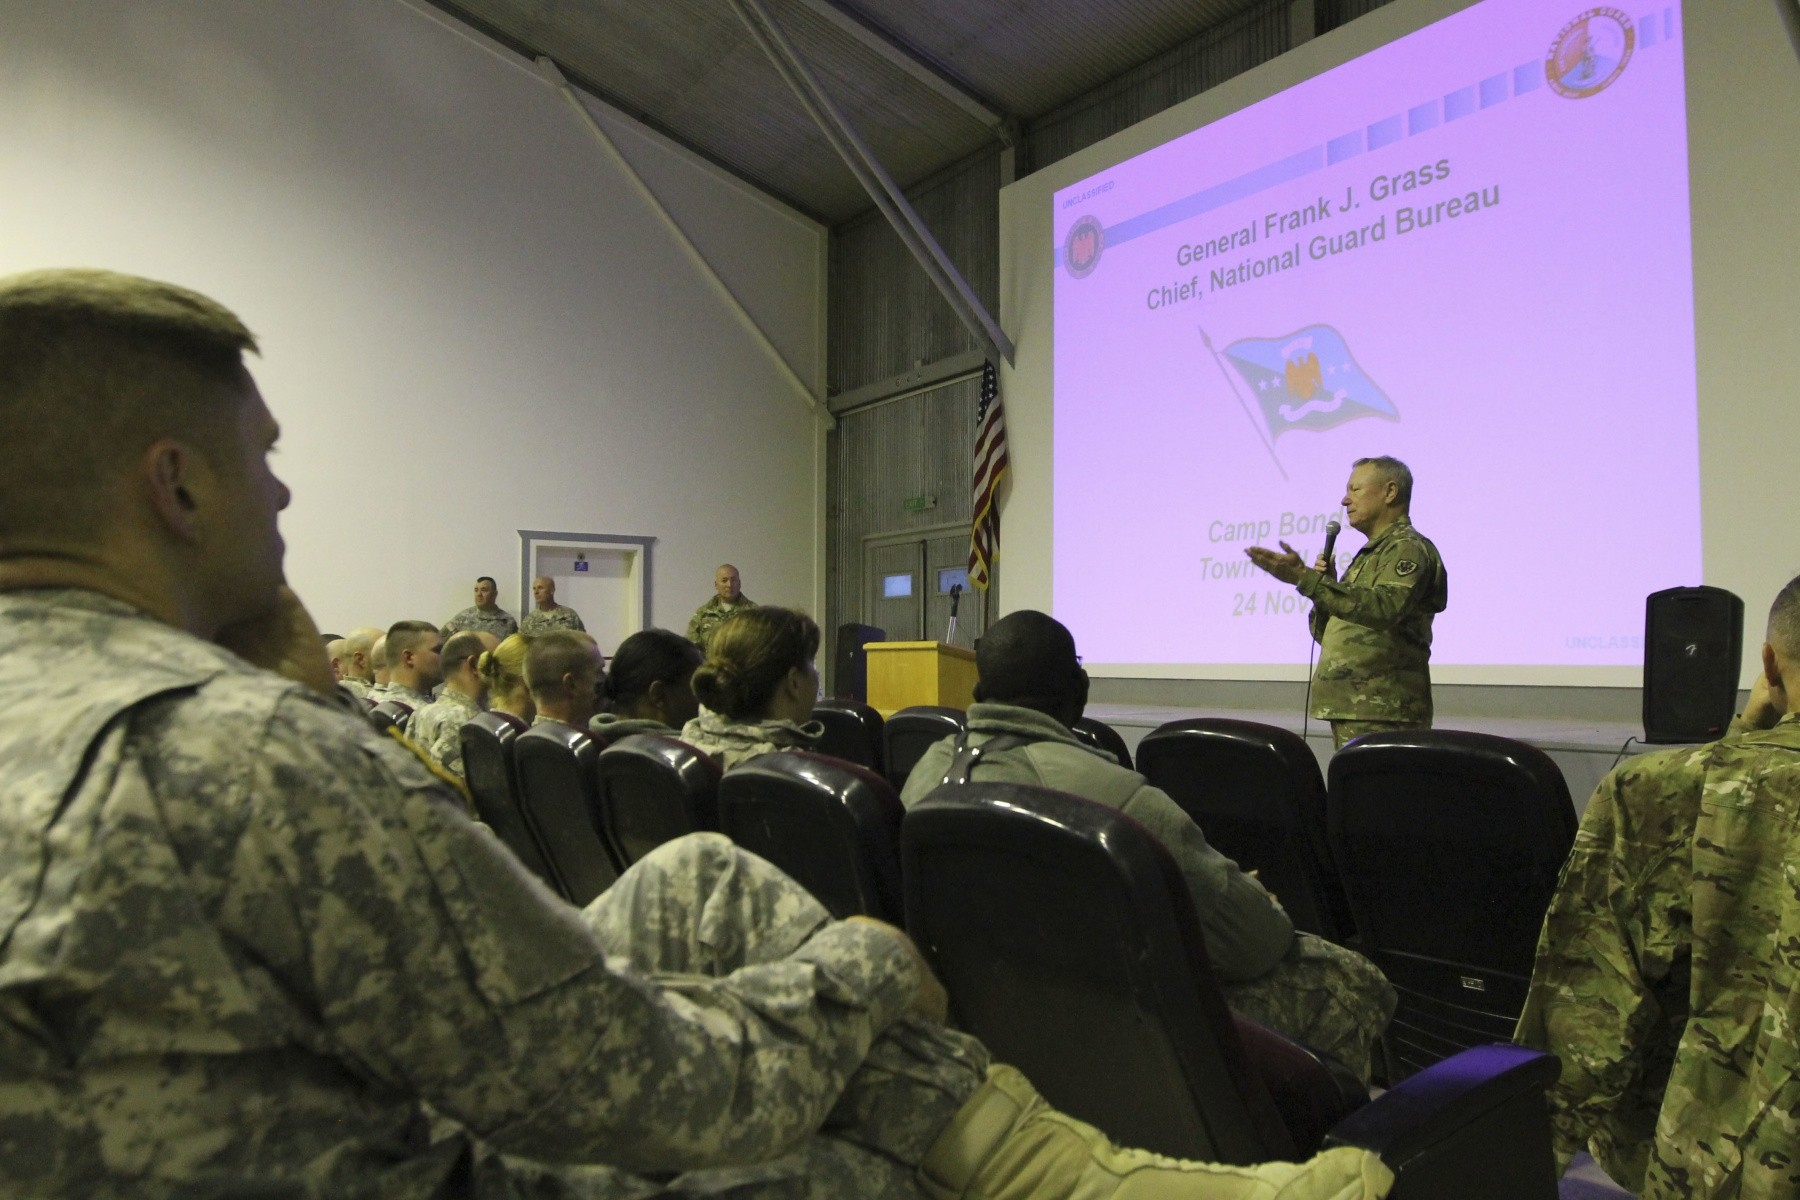 National Guard Bureau leaders visit troops in Kosovo Article